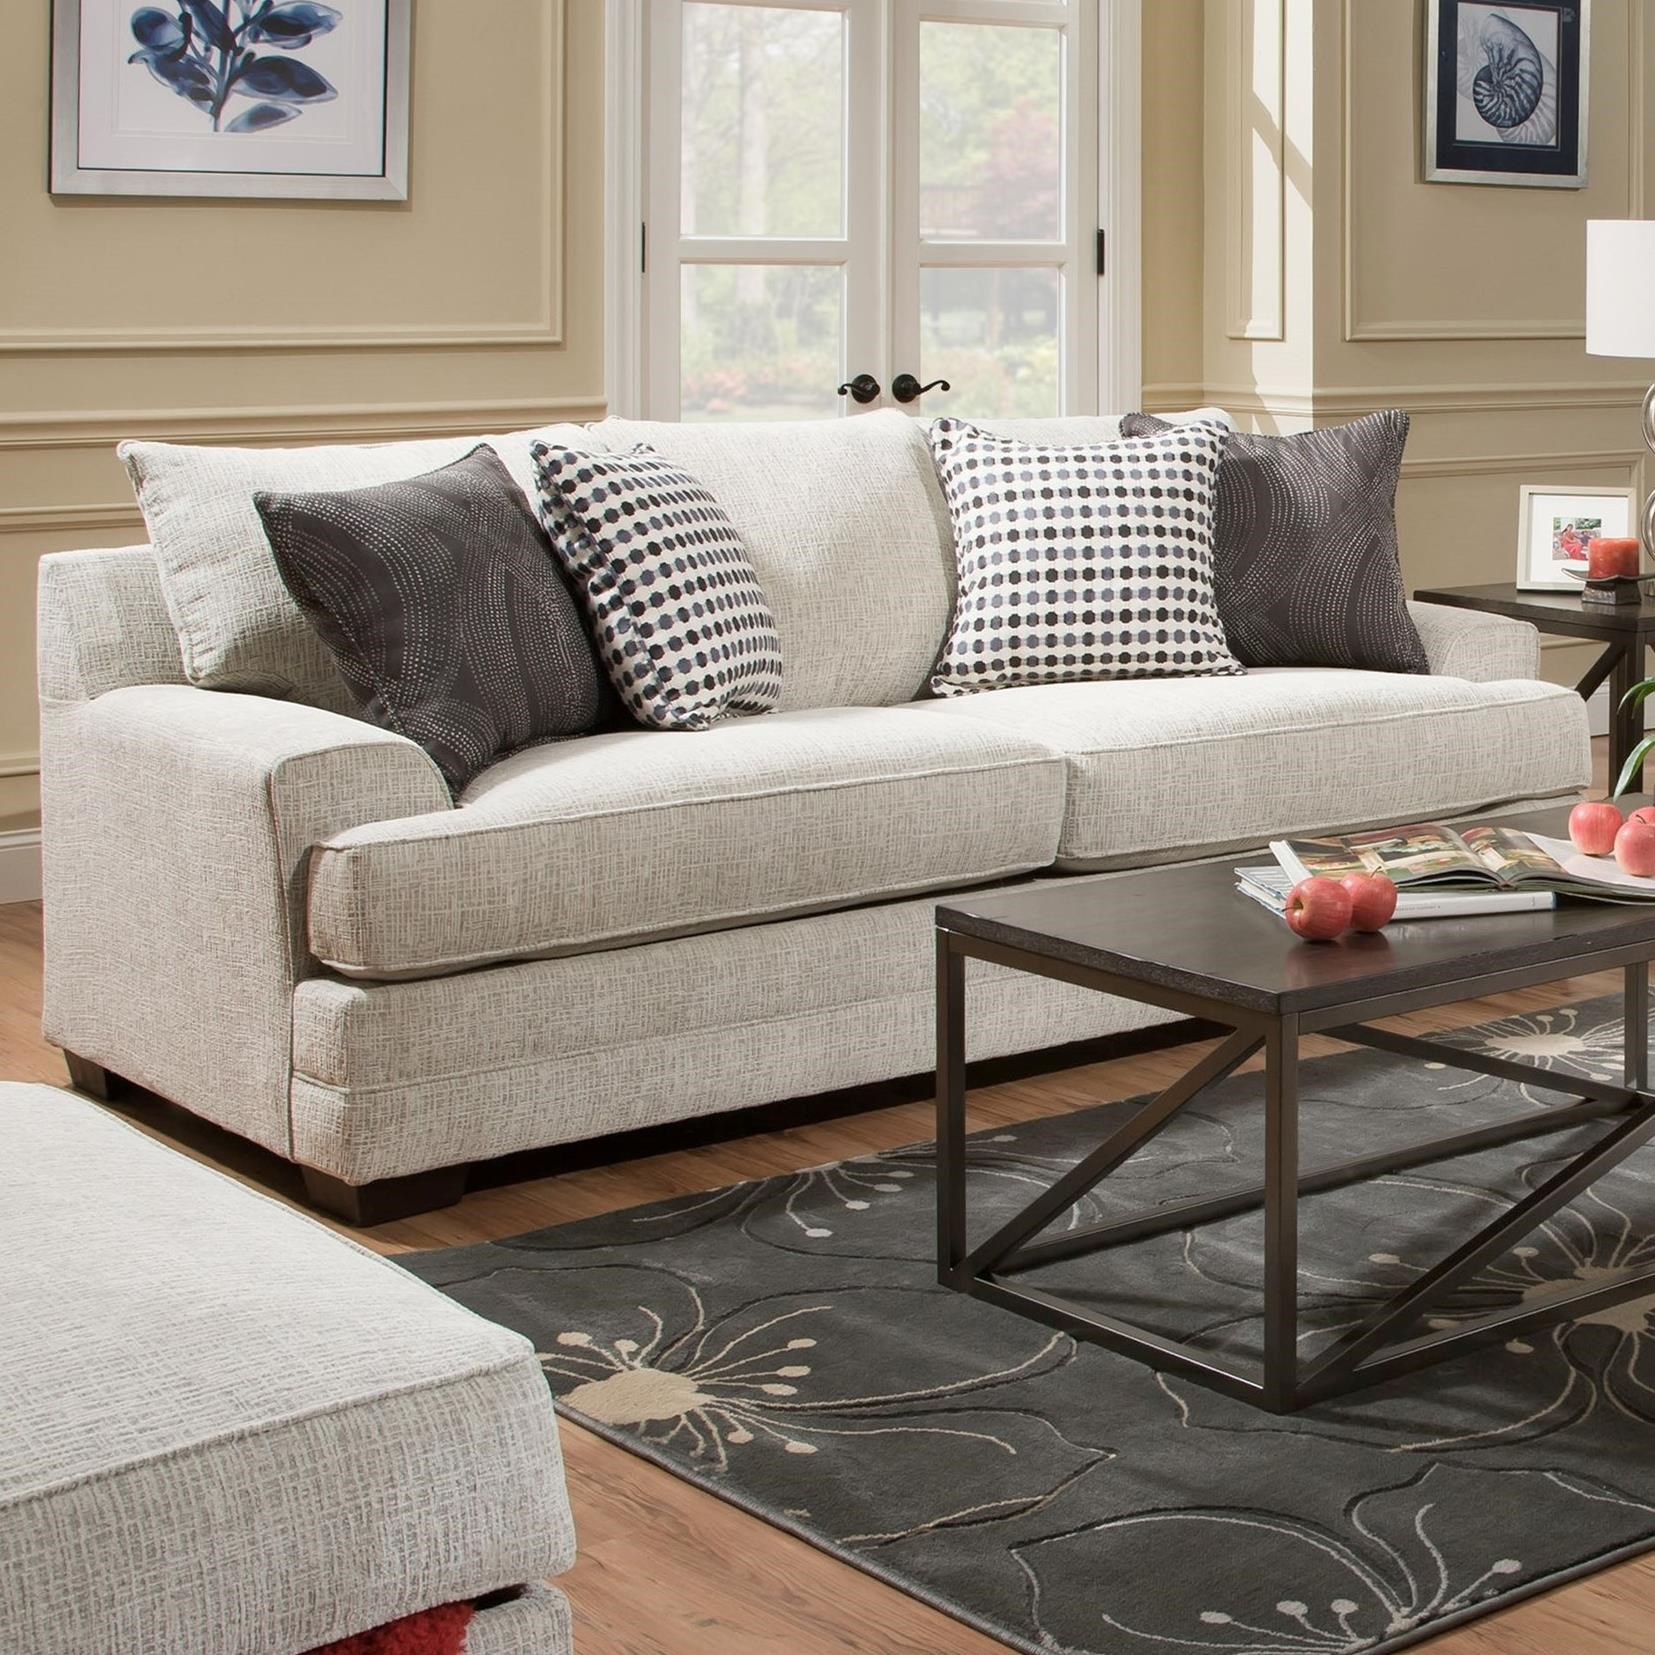 6548BR Sofa by Simmons Upholstery at O'Dunk & O'Bright Furniture